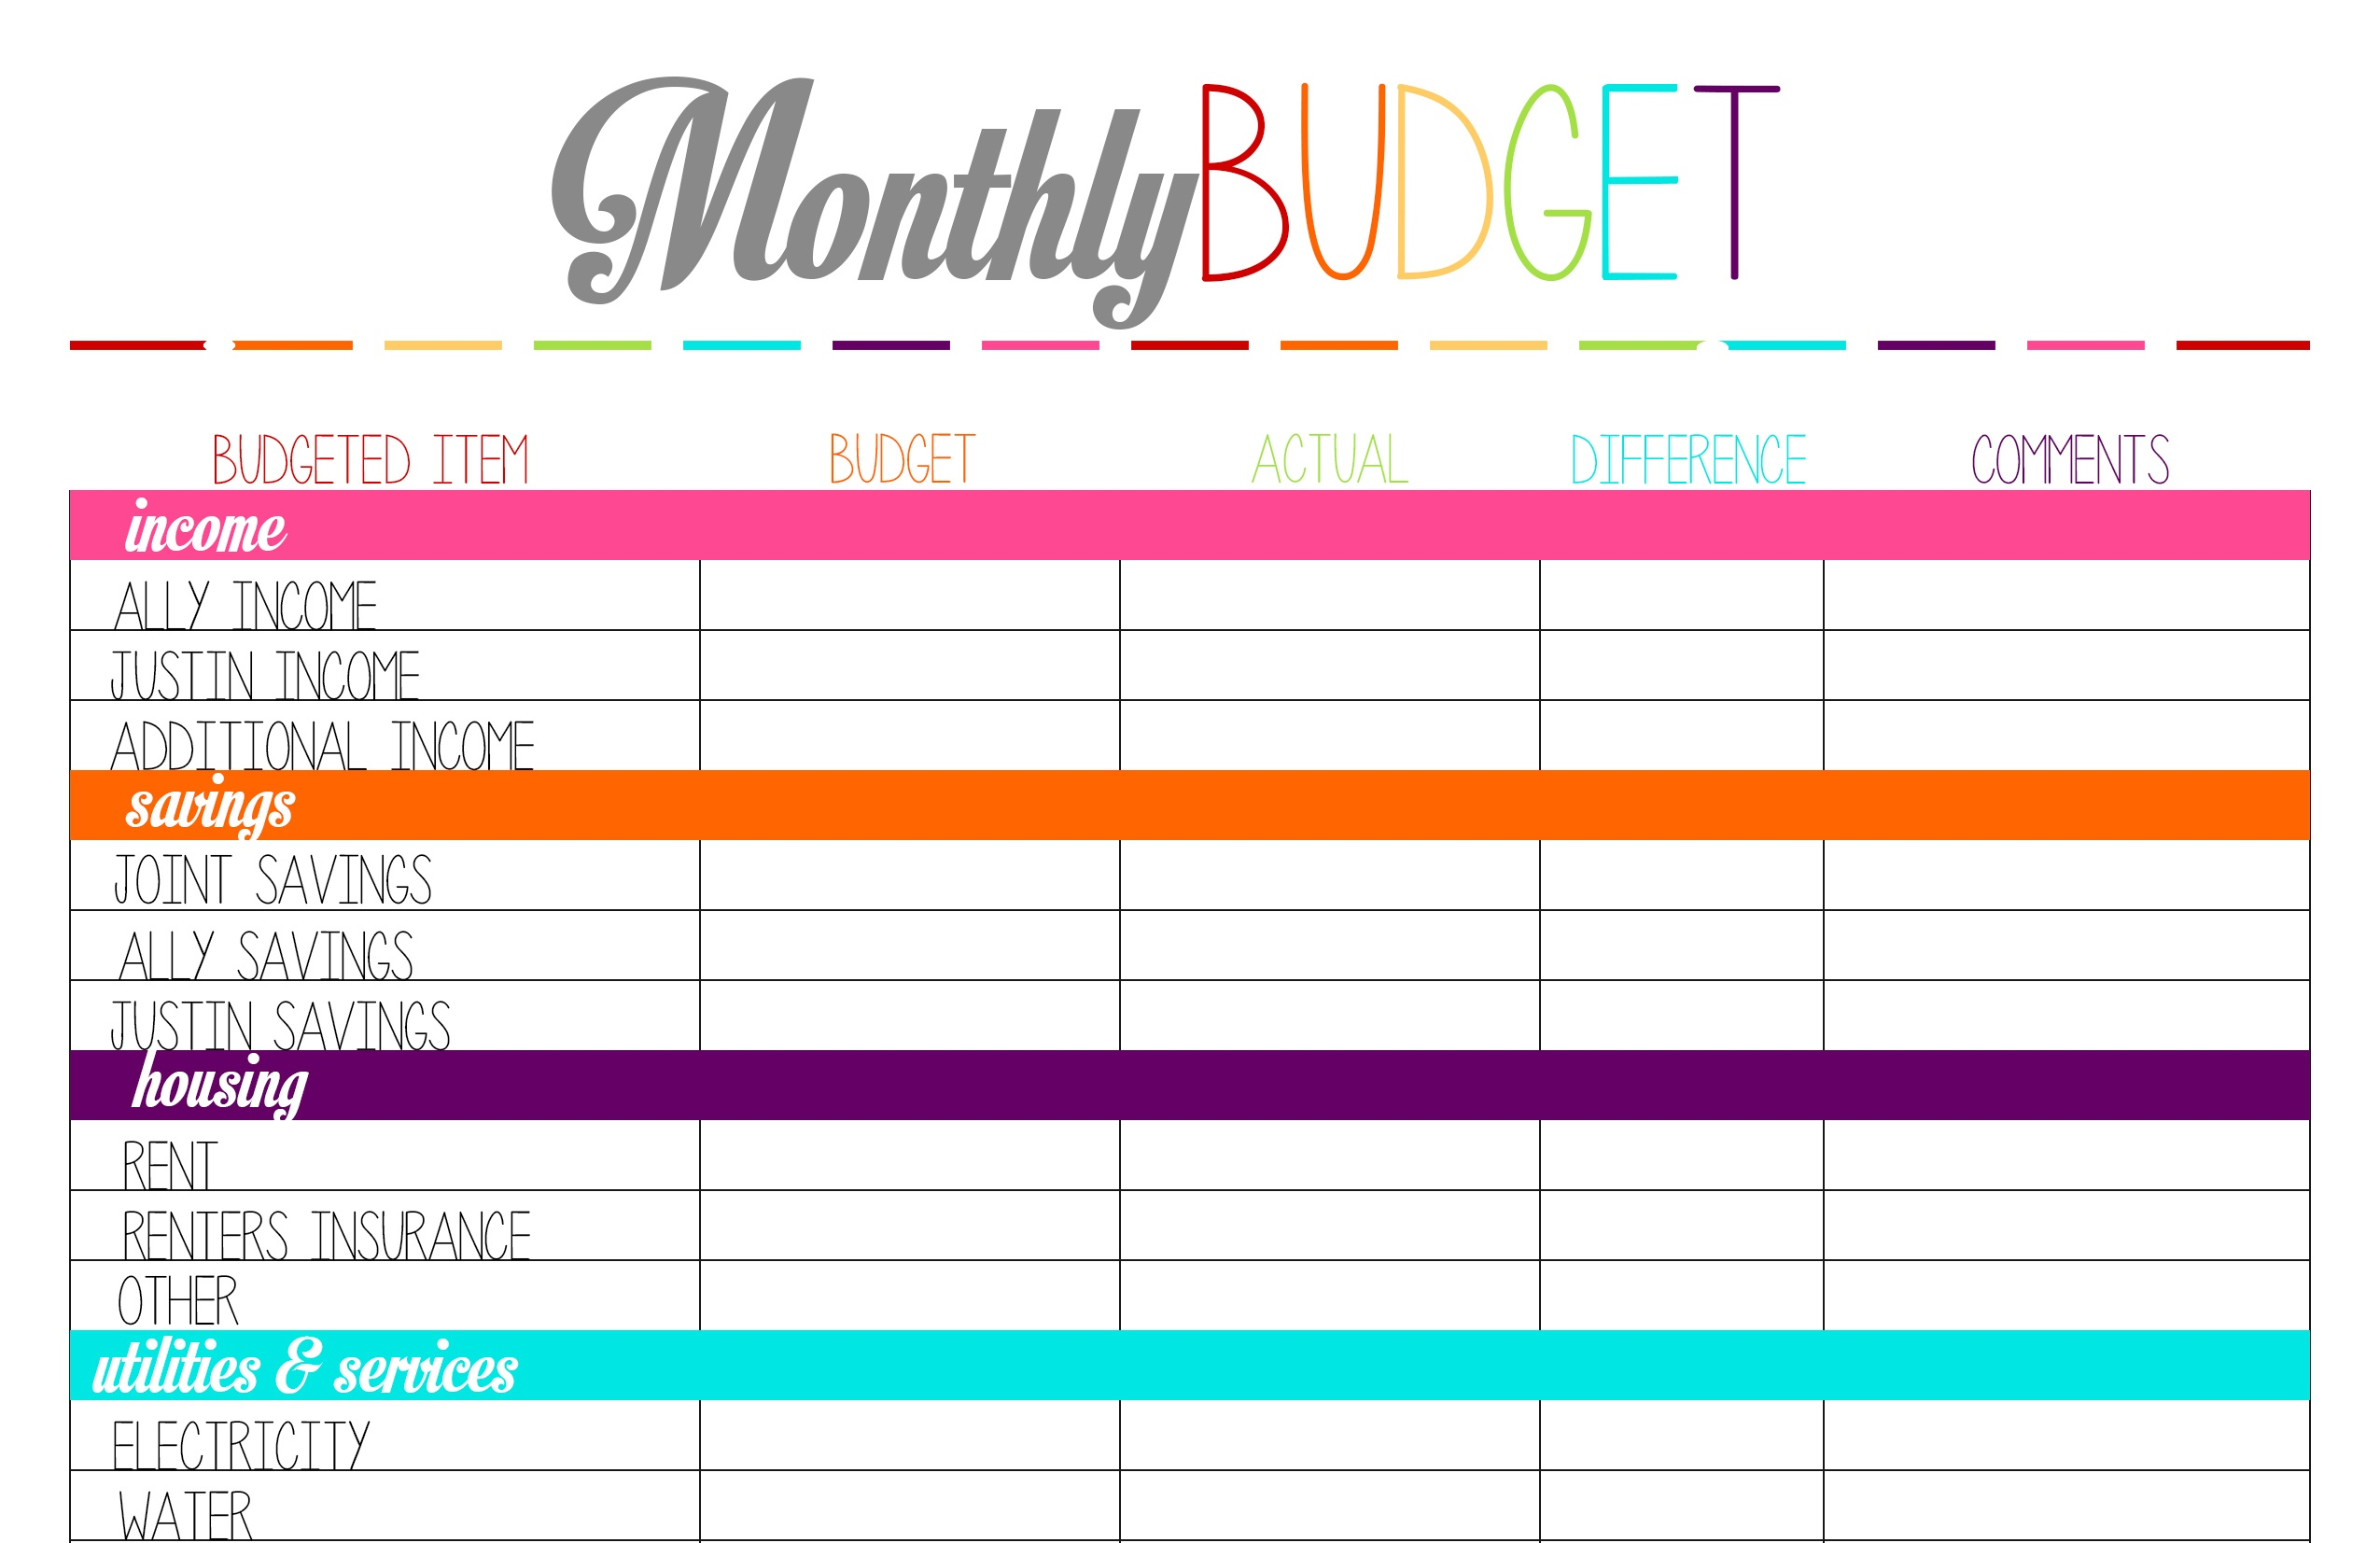 Printable Monthly Budget Forms - Kaza.psstech.co - Free Printable Budget Forms